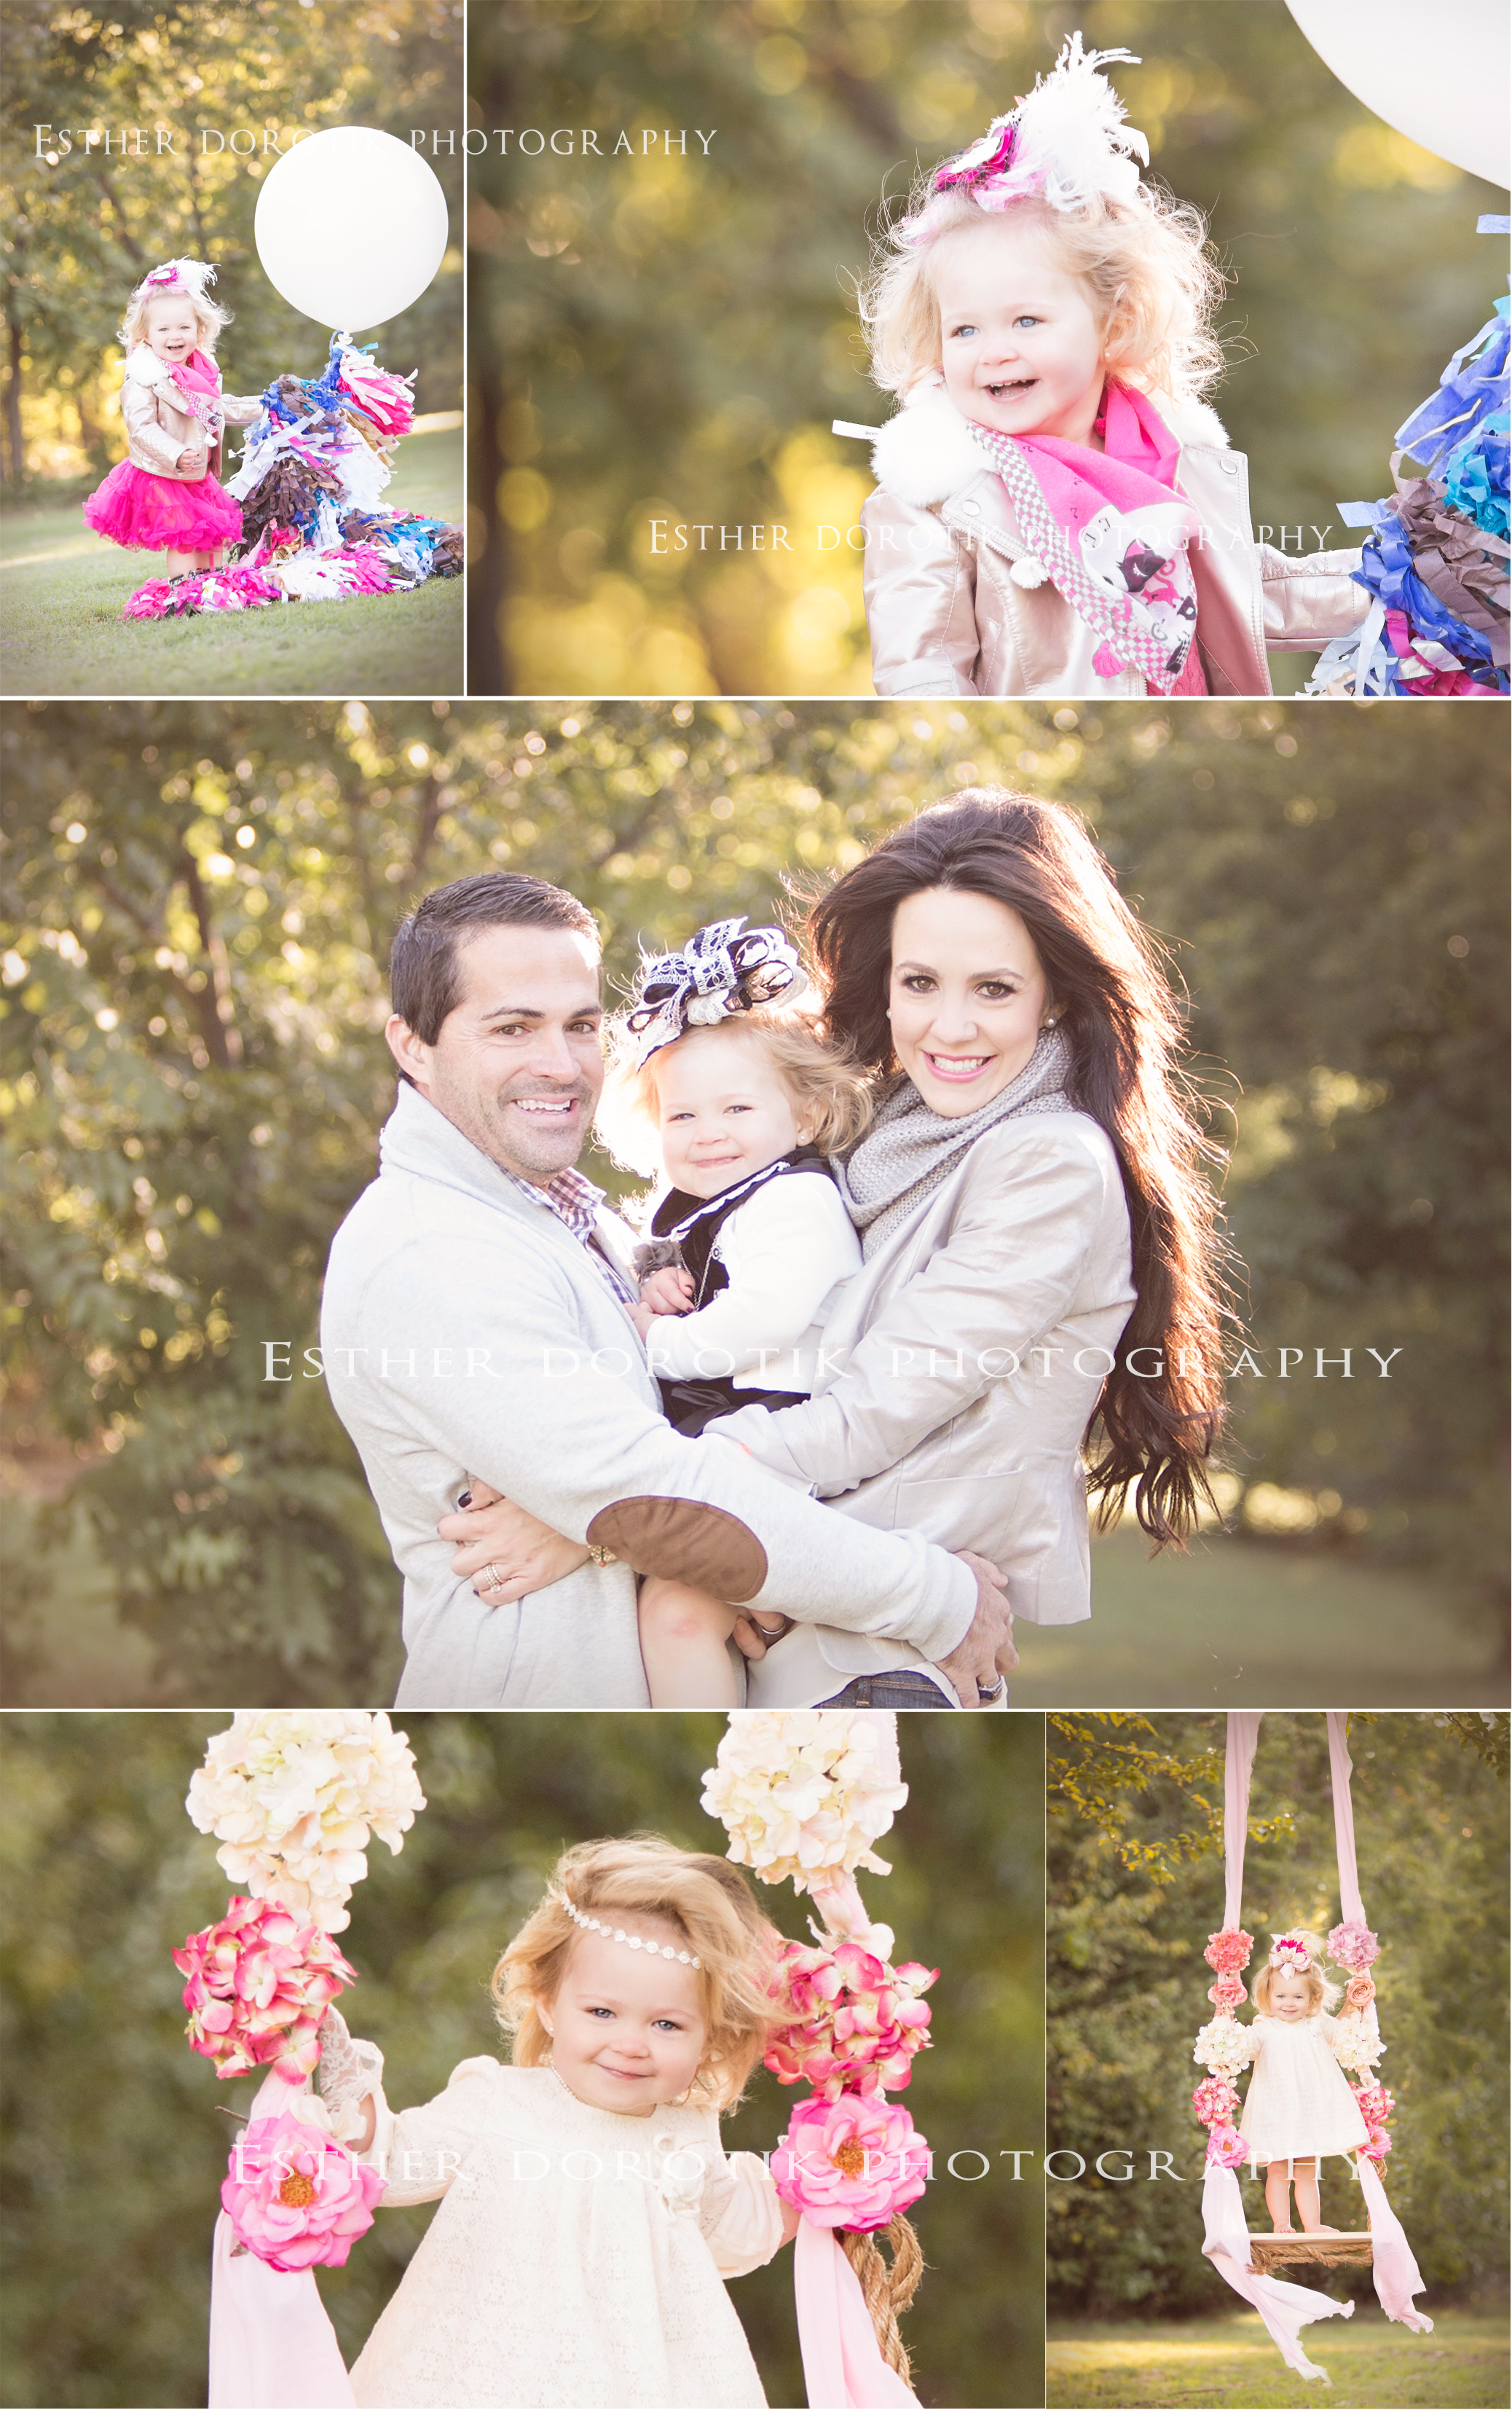 artistic-and-fun-family-photography-session-outdoors-with-2-year-old-girl-on-swing-by-Dallas-leading-child-photographer